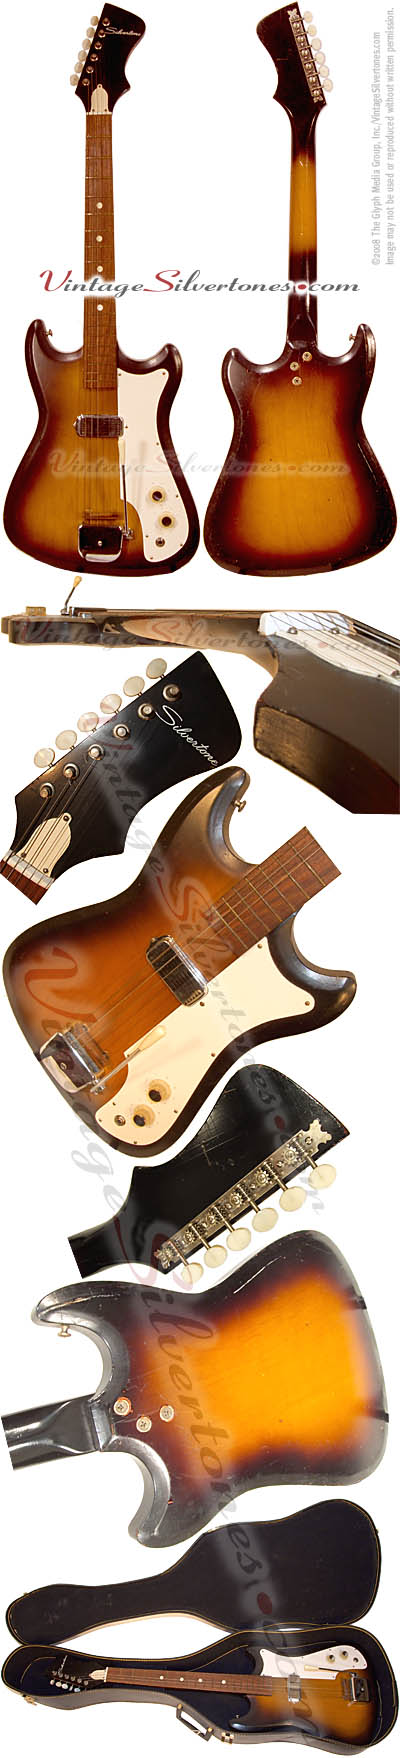 Silvertone 1416, solid body, electric guitar with 1 pickup, walnut sunburst made by Kay of Chicago, IL 1965